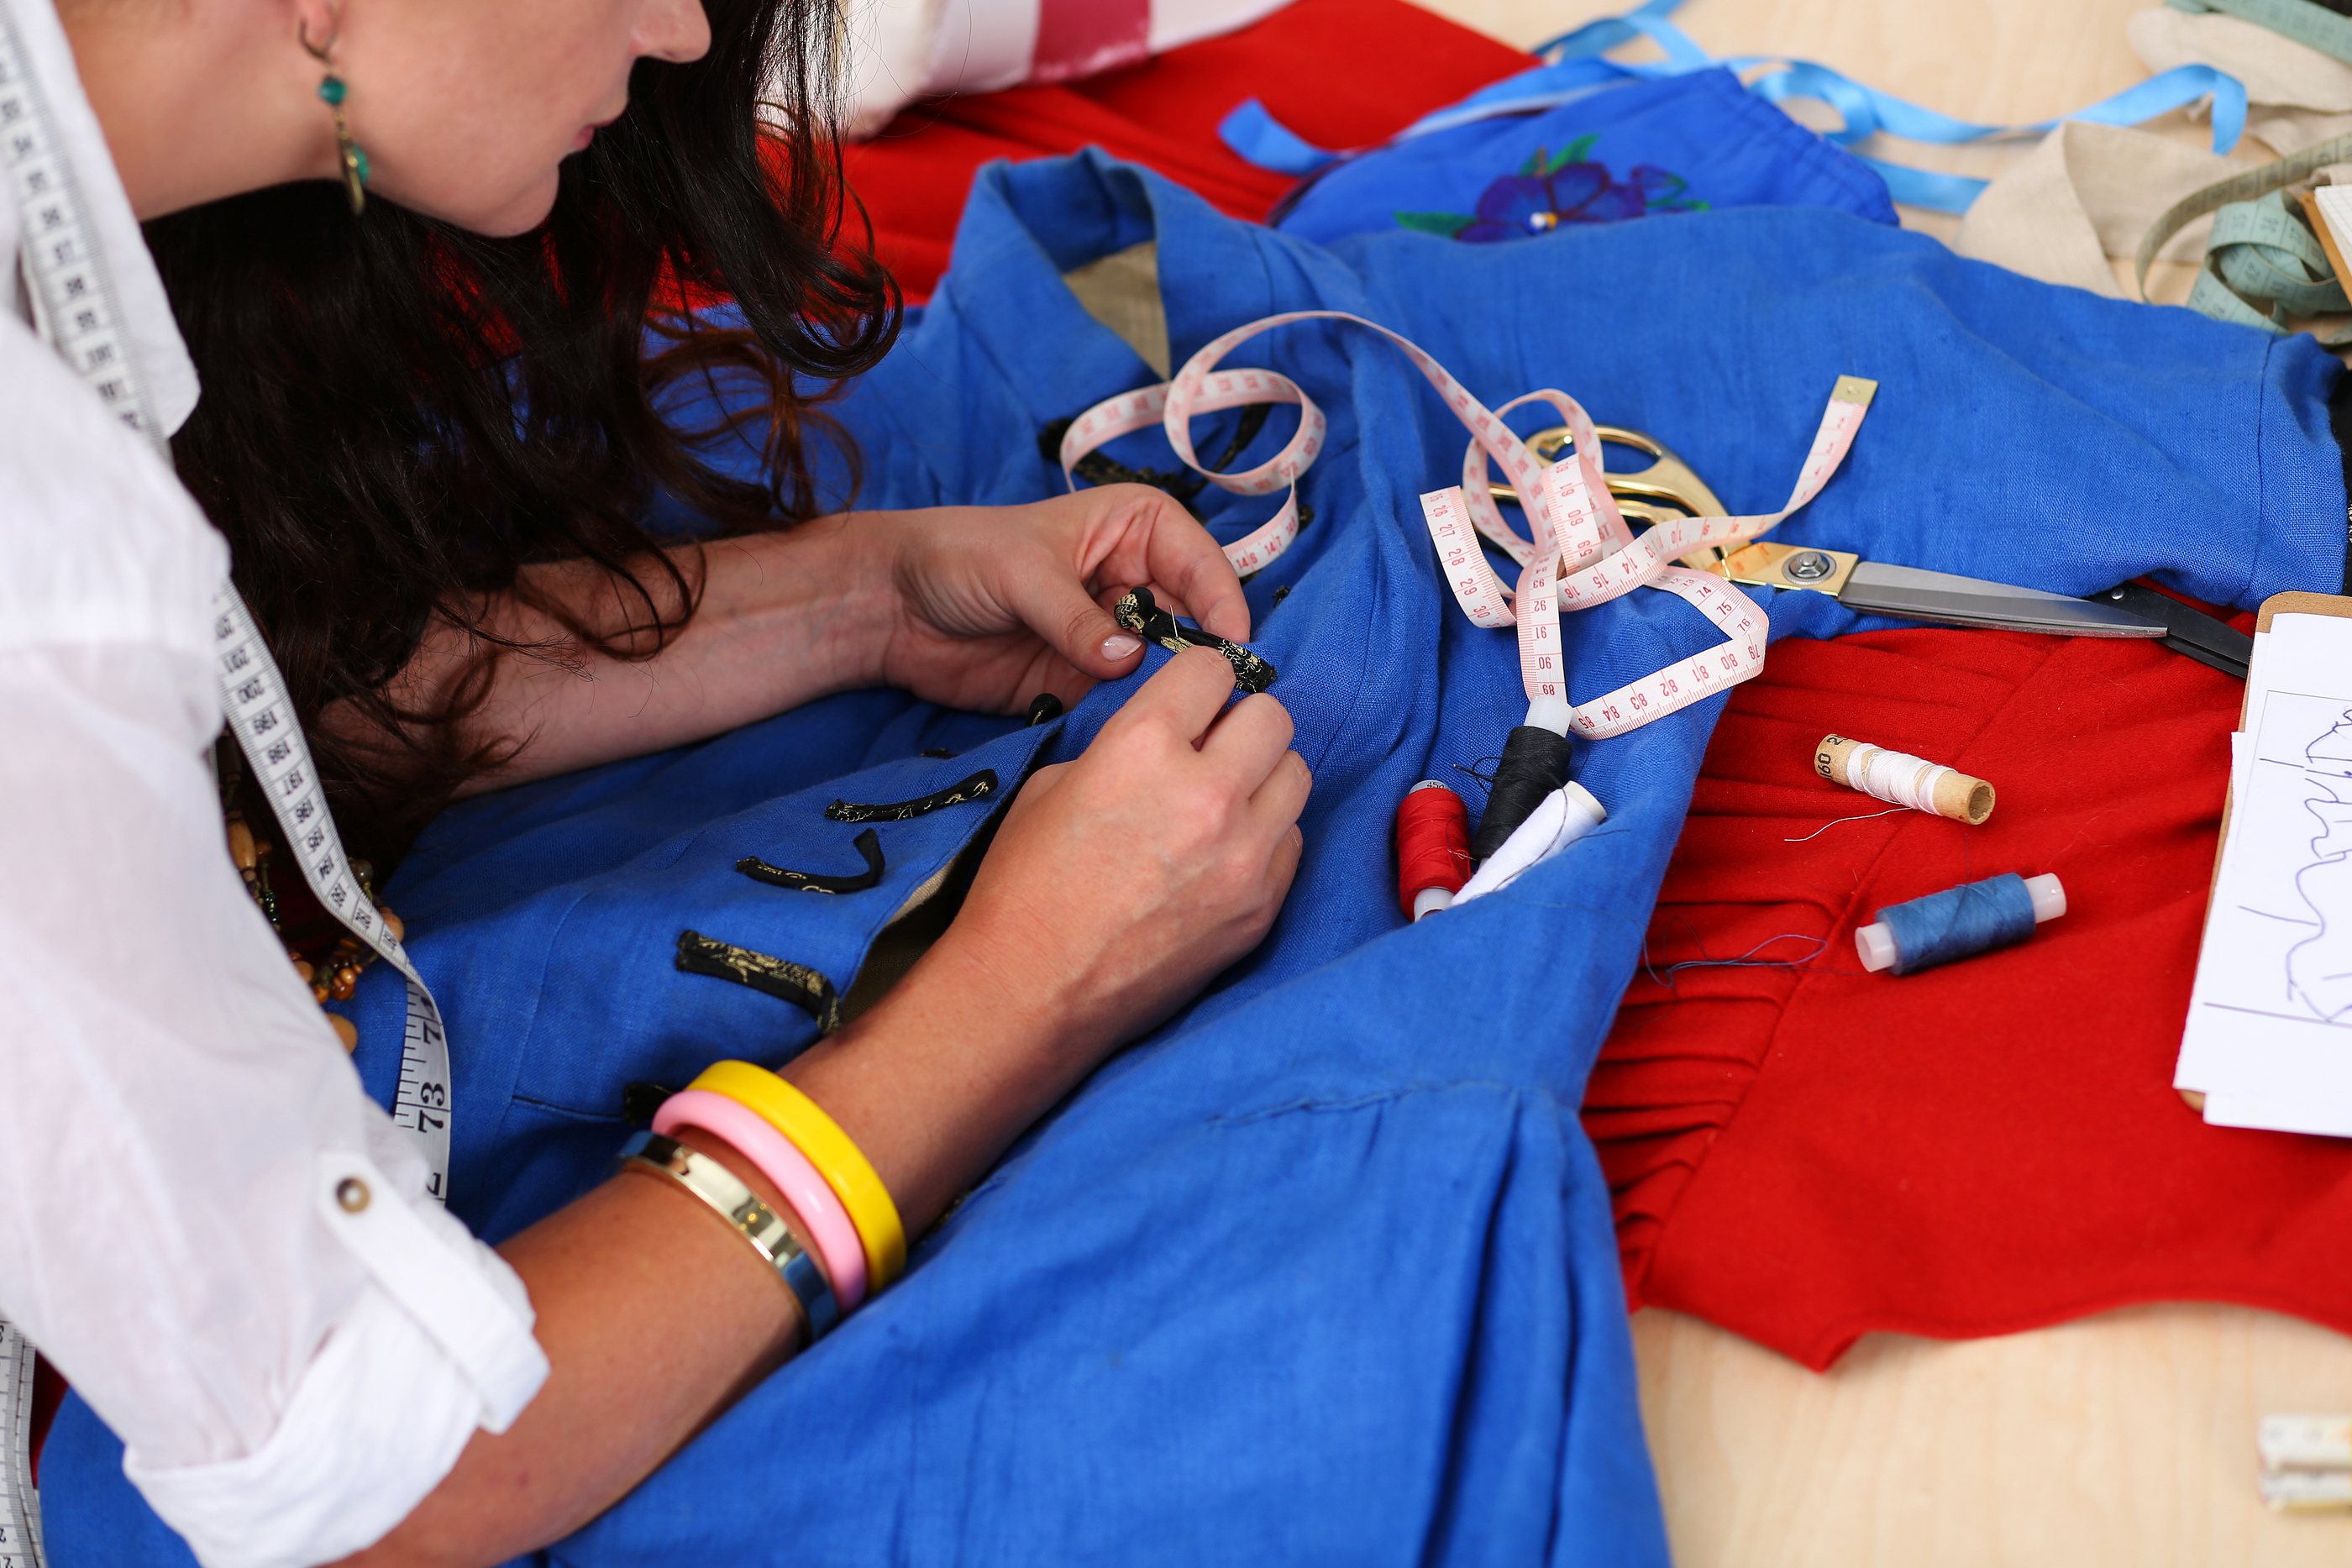 Sewing workshops